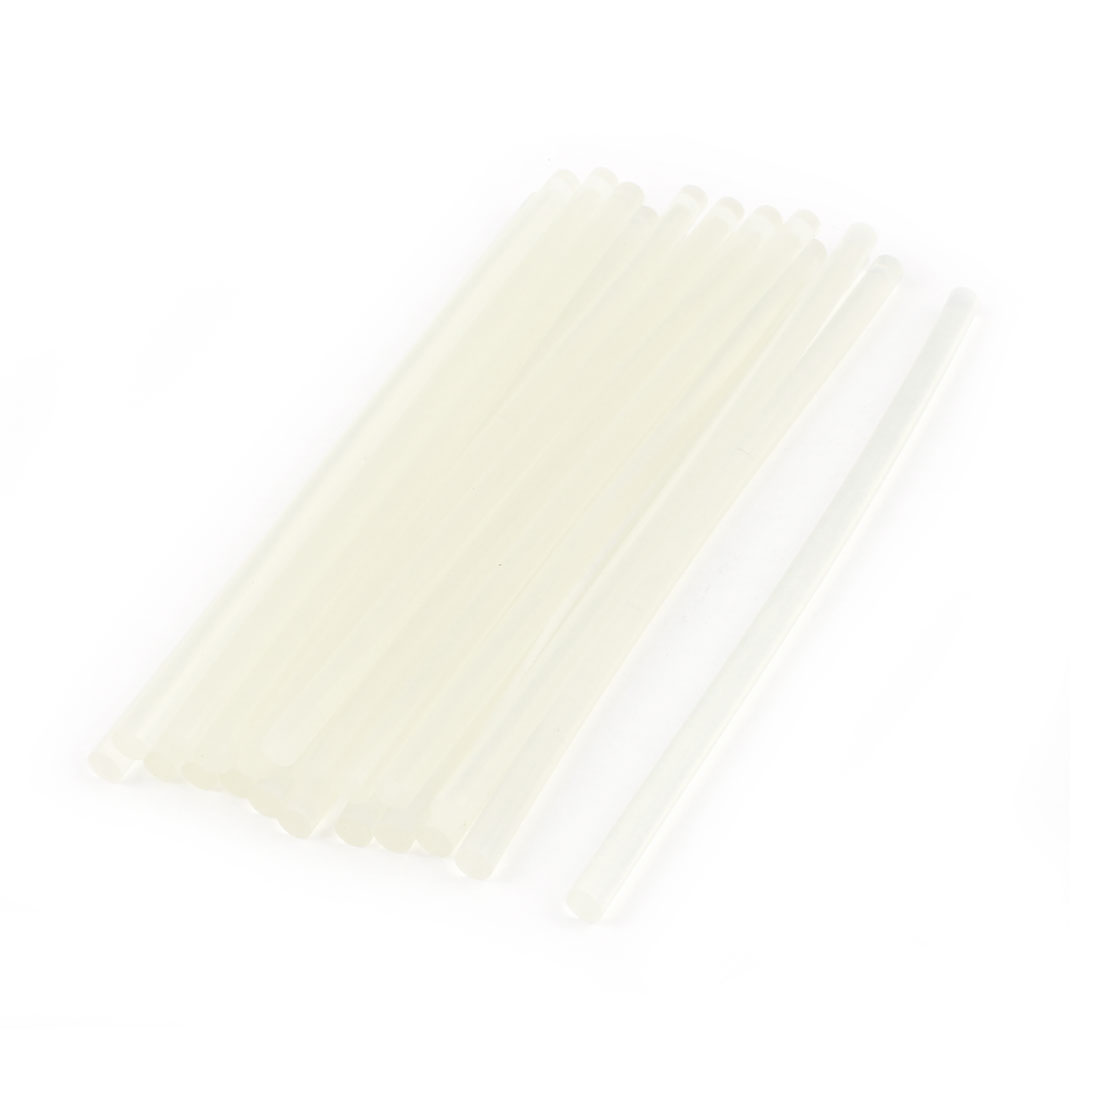 20 Pcs Clear White Hot Melt EVA Glue Adhesive Sticks 7x190mm